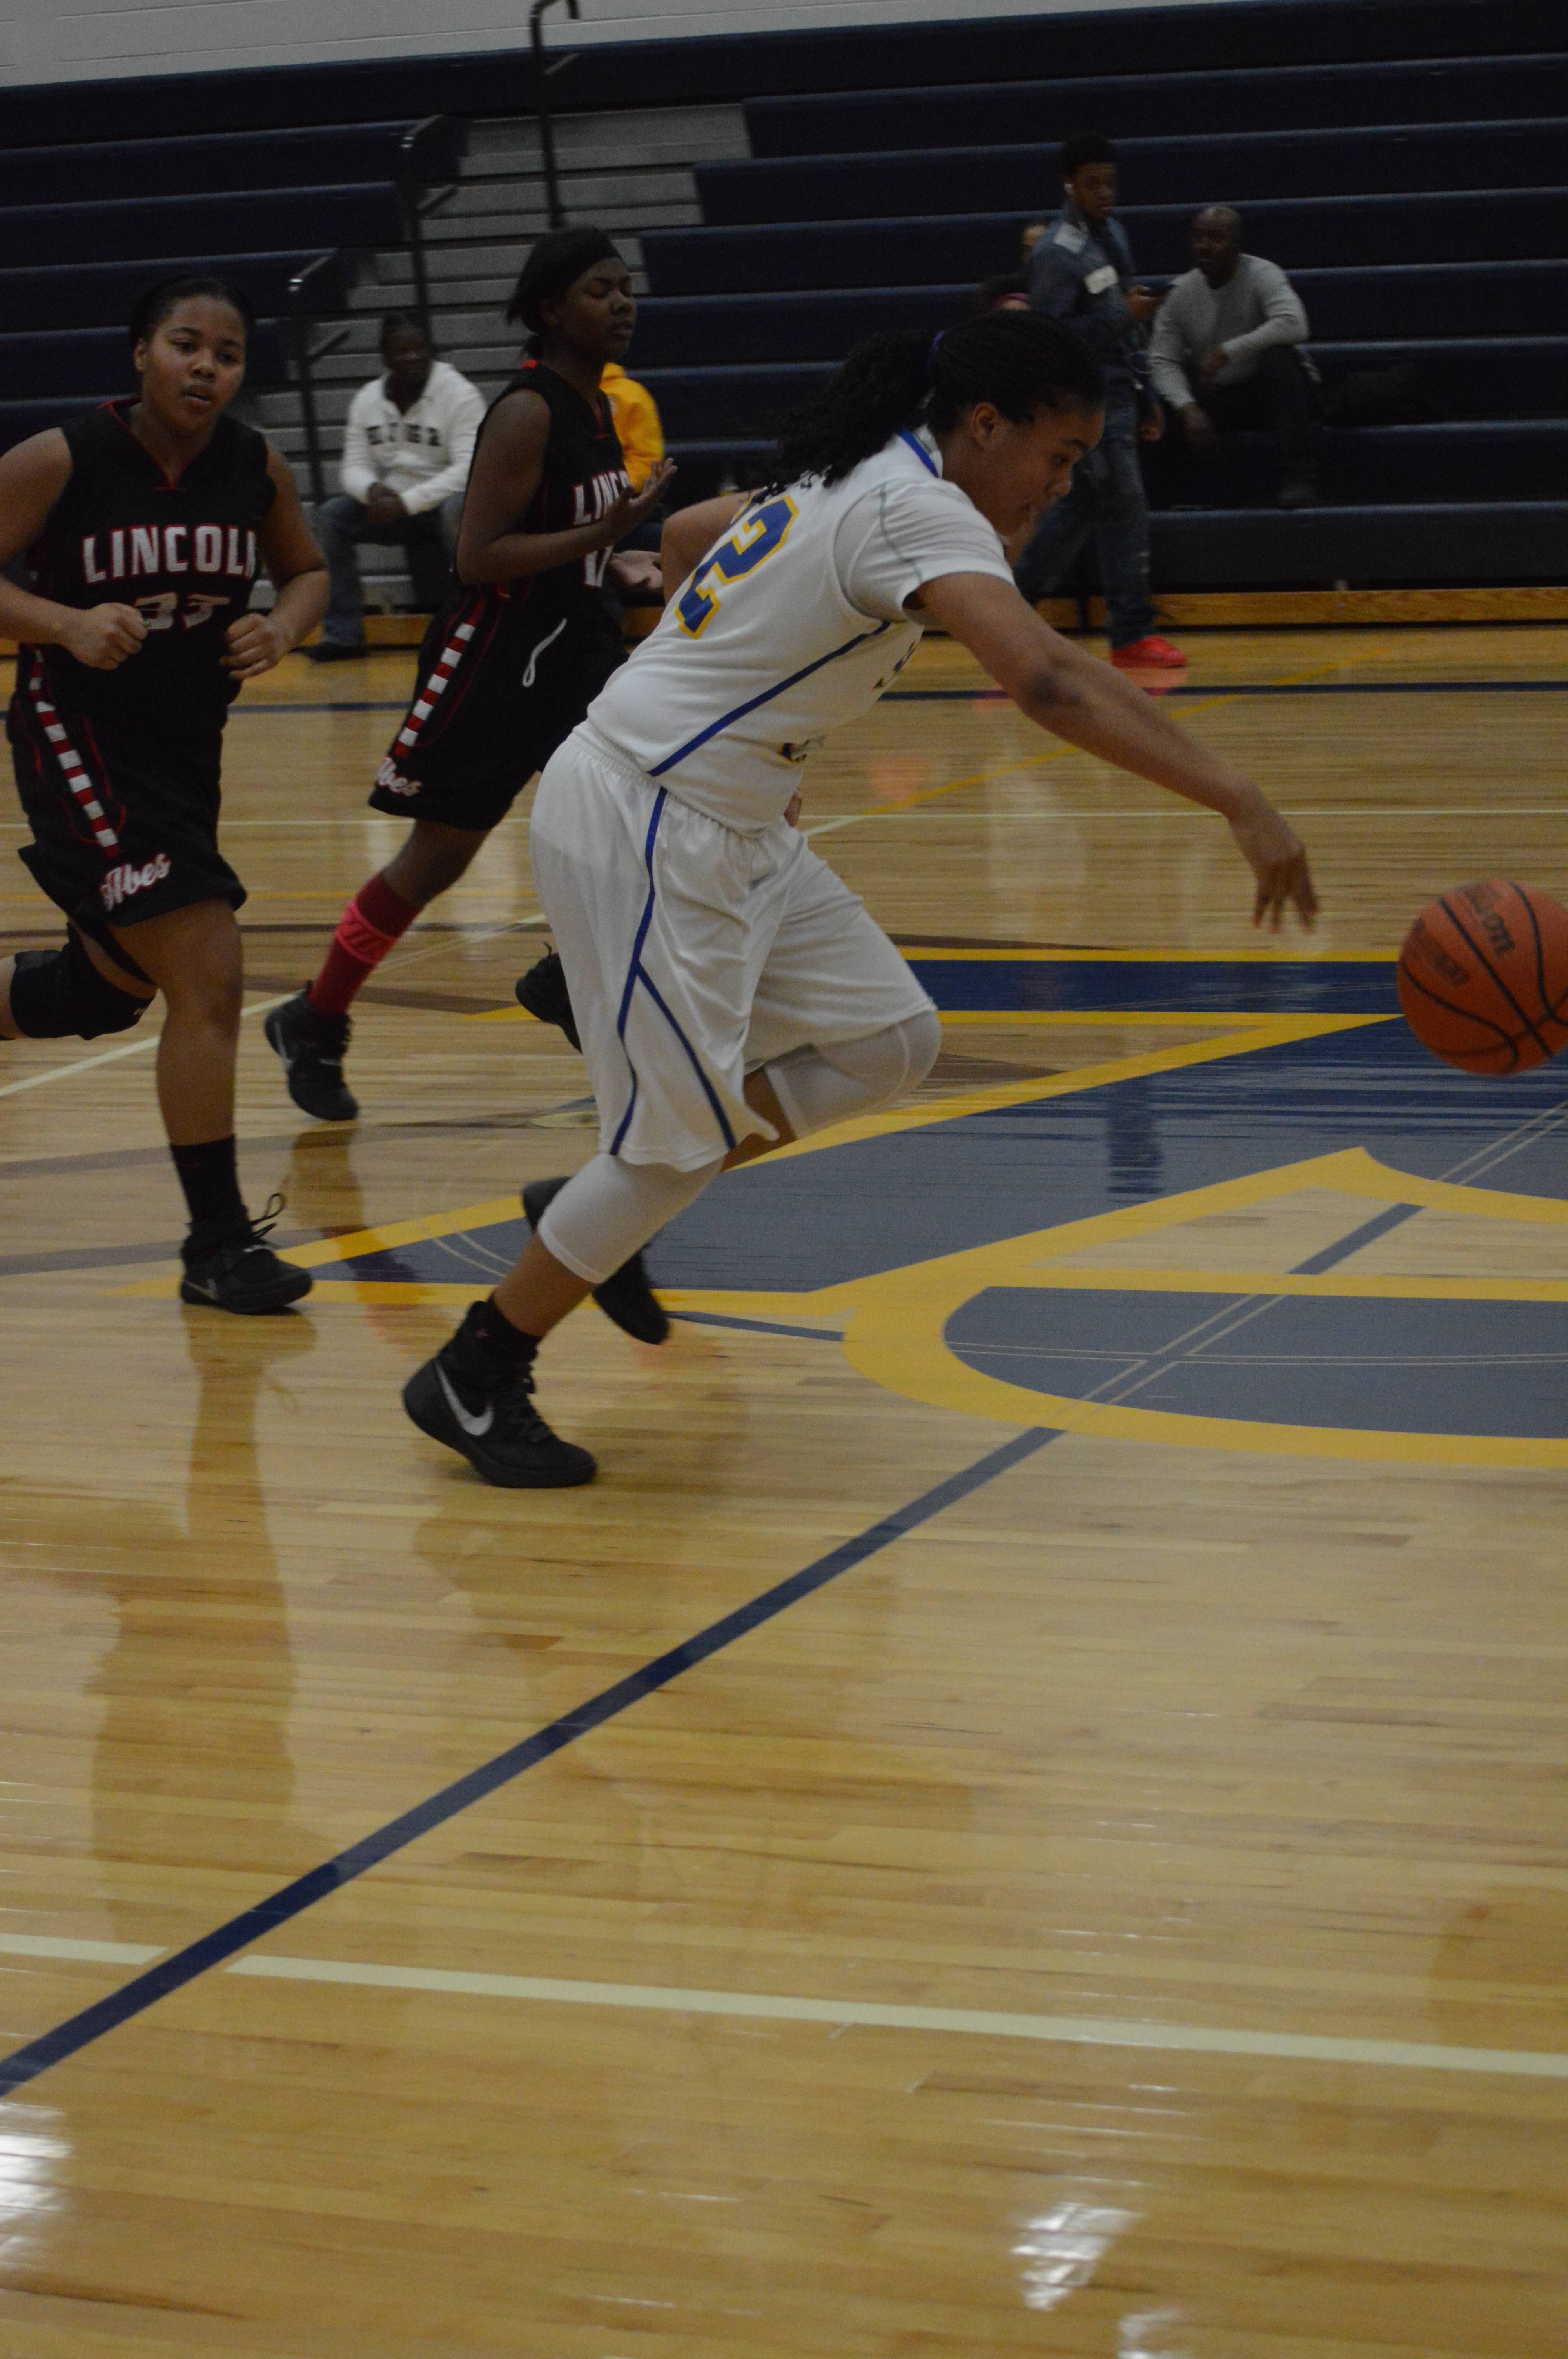 With defenders on her heels, Williams hustles down the court.